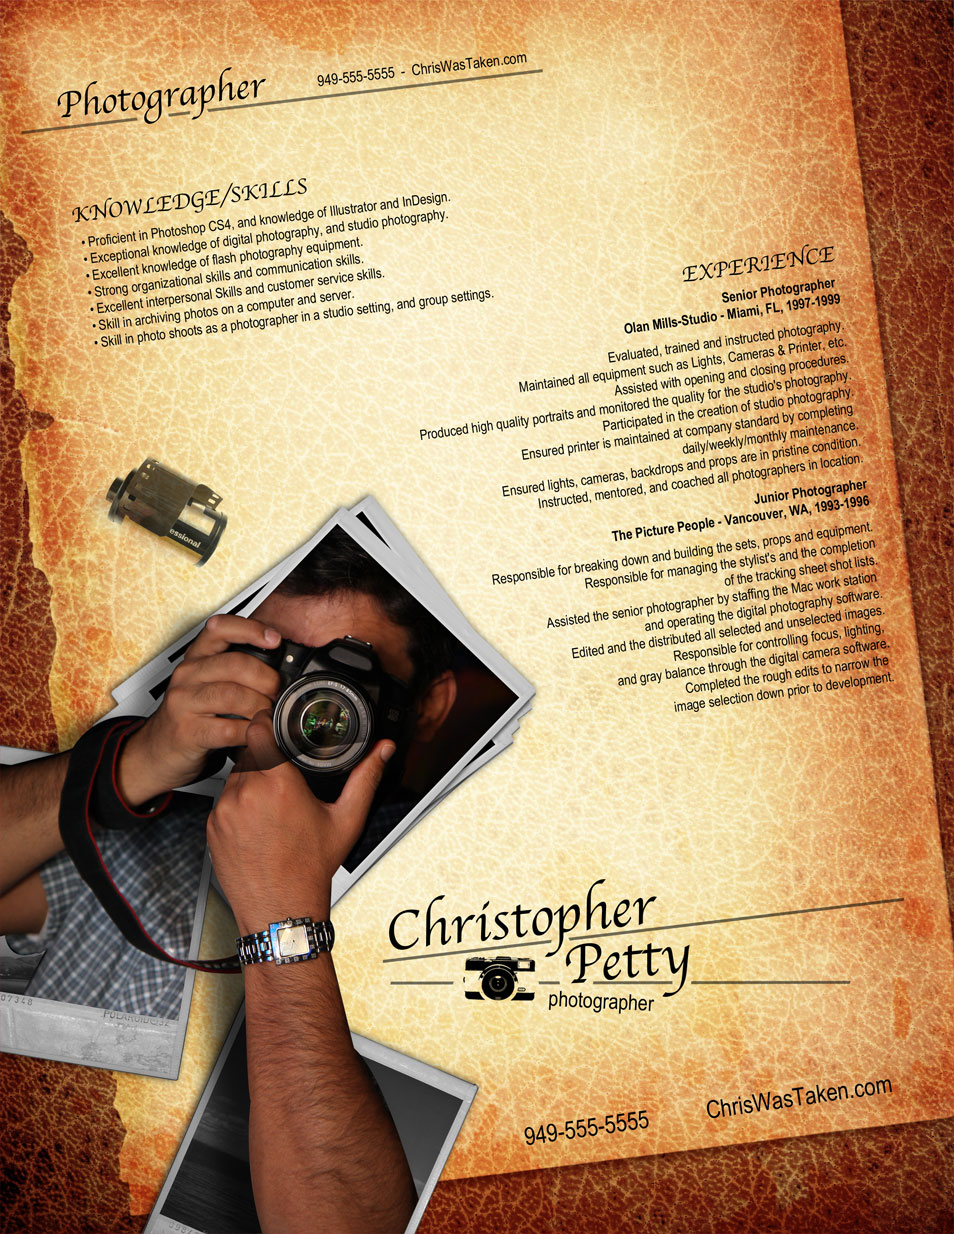 Opposenewapstandardsus  Remarkable  Creative Cvresume Design Inspiration With Exciting Resume Photographer With Astounding Audit Resume Also Resume Don Ts In Addition Resume For Stay At Home Mom Returning To Work And Objective On A Resume Example As Well As Free Samples Of Resumes Additionally Resume French From Cssauthorcom With Opposenewapstandardsus  Exciting  Creative Cvresume Design Inspiration With Astounding Resume Photographer And Remarkable Audit Resume Also Resume Don Ts In Addition Resume For Stay At Home Mom Returning To Work From Cssauthorcom